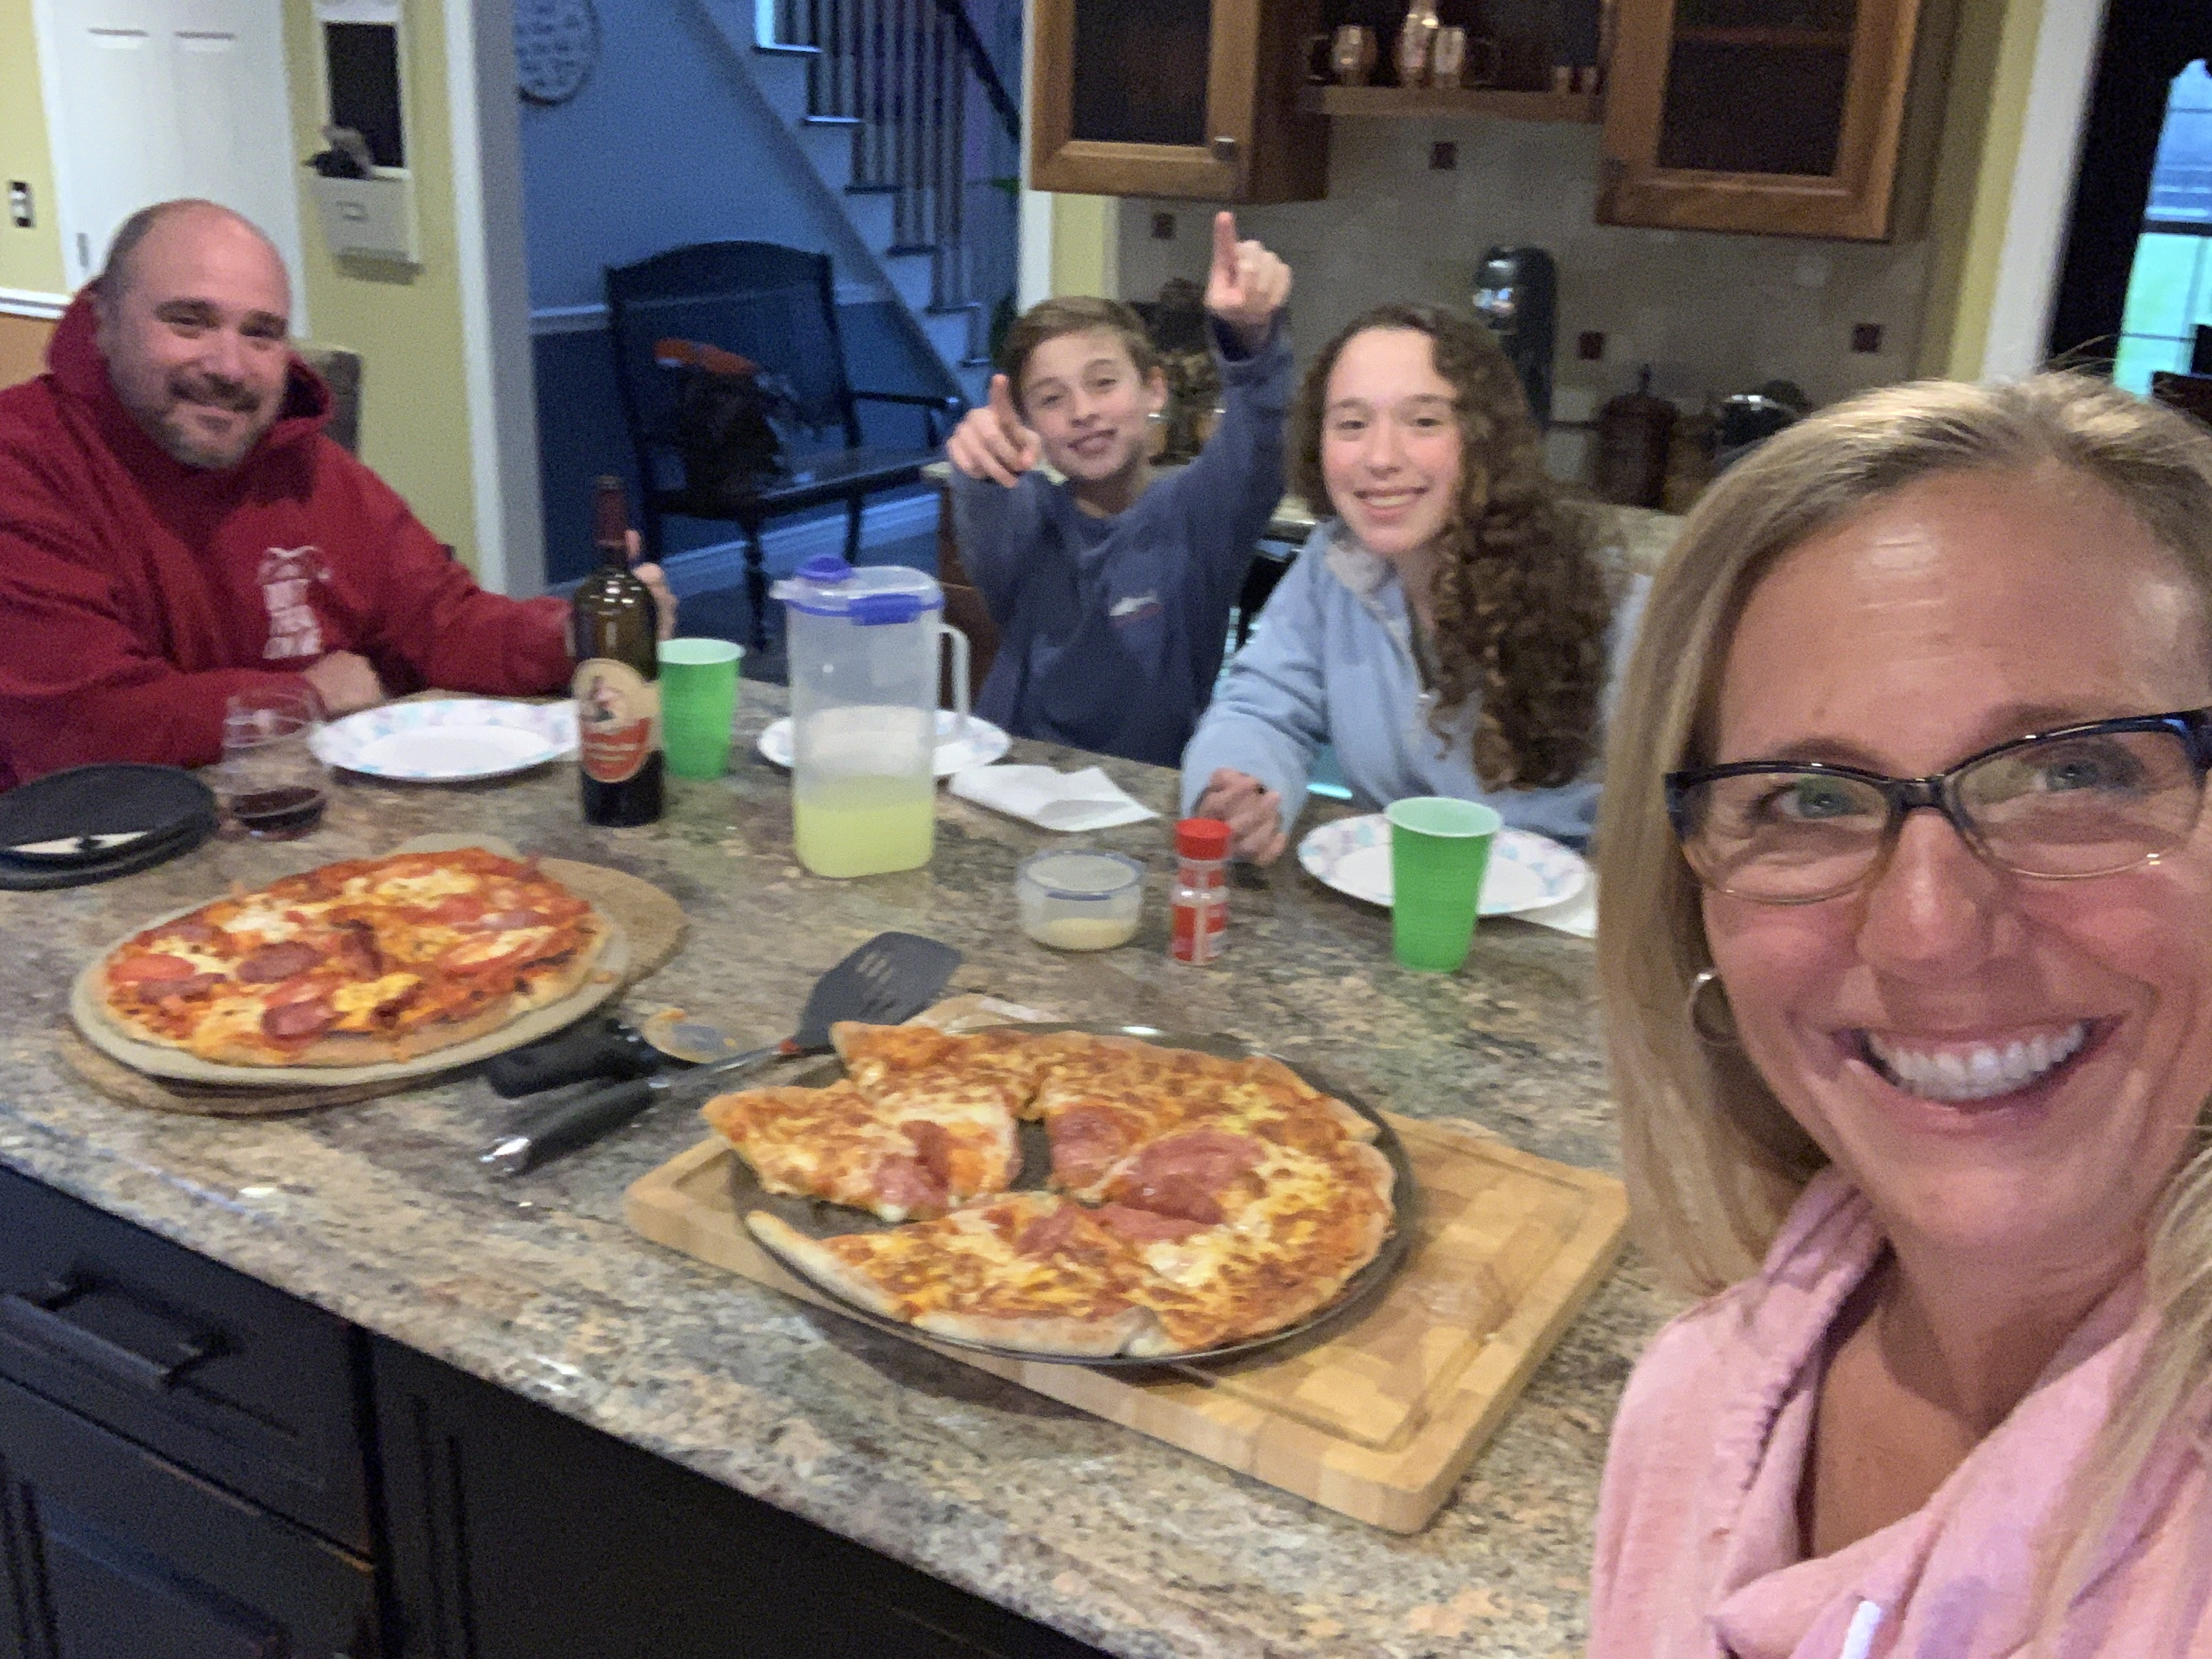 Ramalho Family Enjoying Homemade Pizza